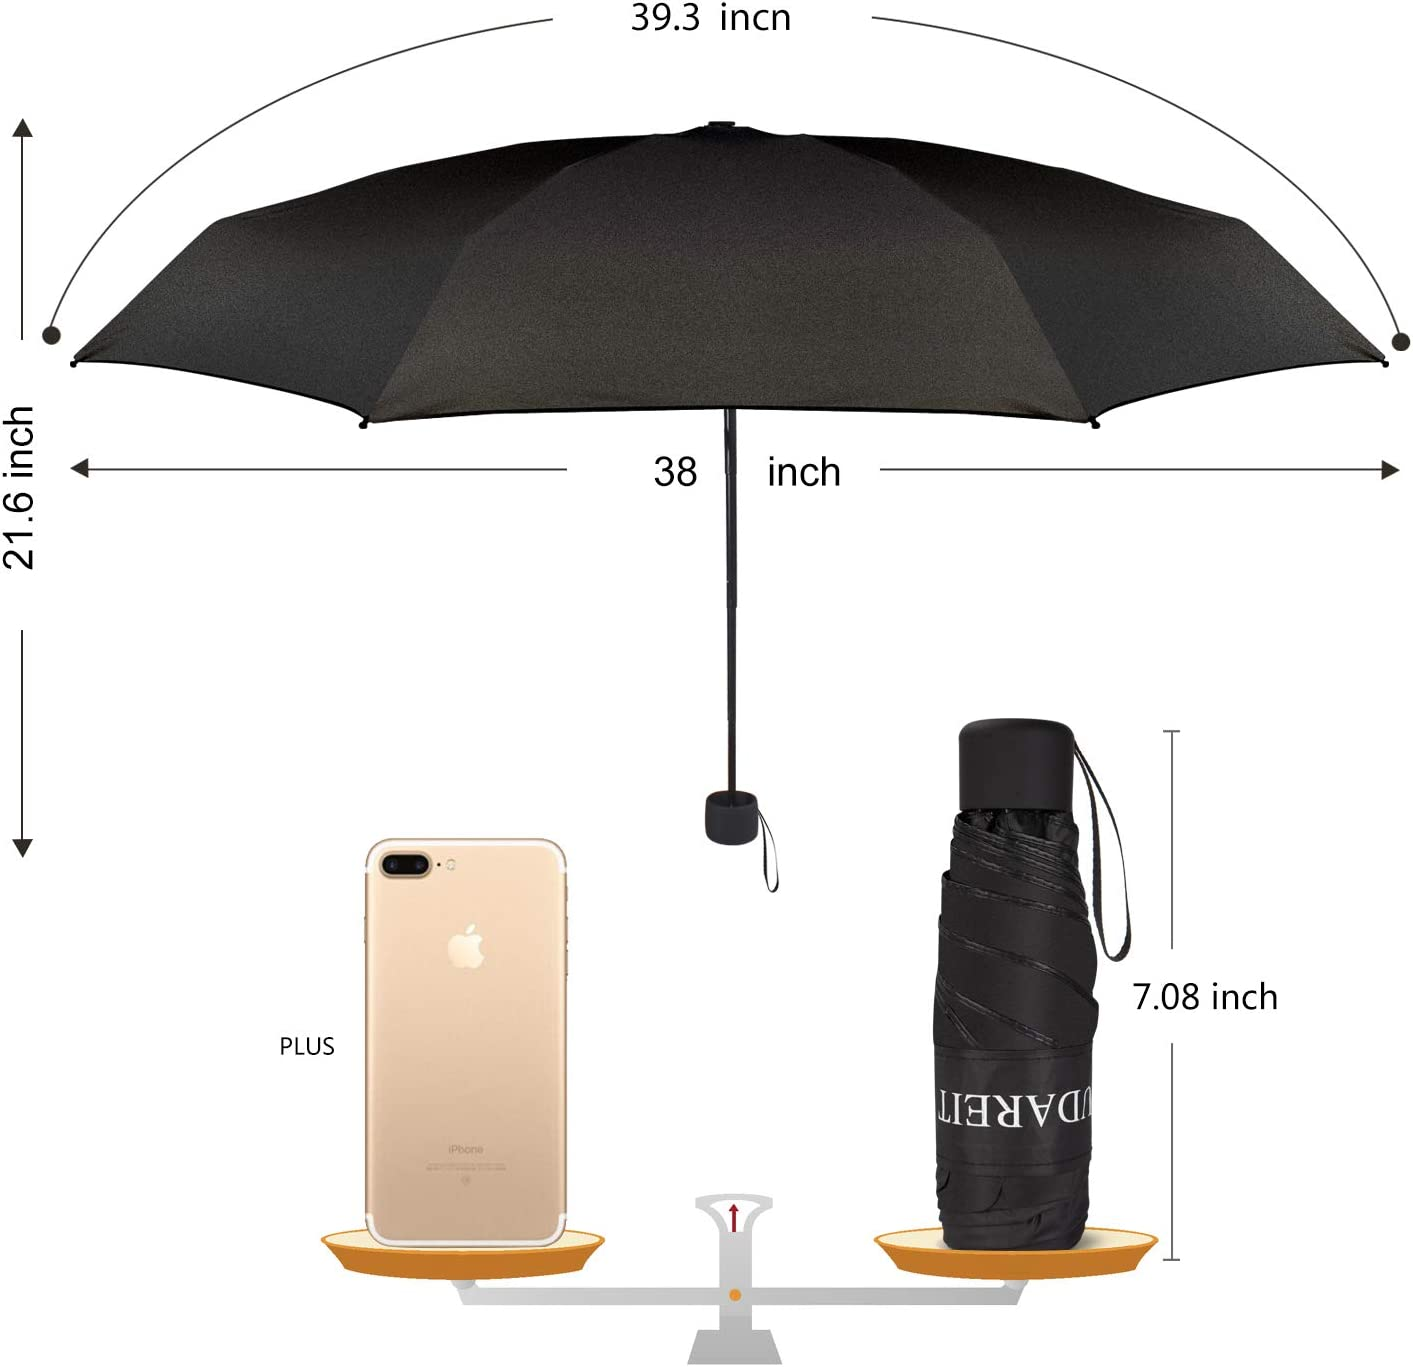 Small Umbrella for Travel Mini Compact Umbrellas Lightweight for Sun UV Protection Yellow